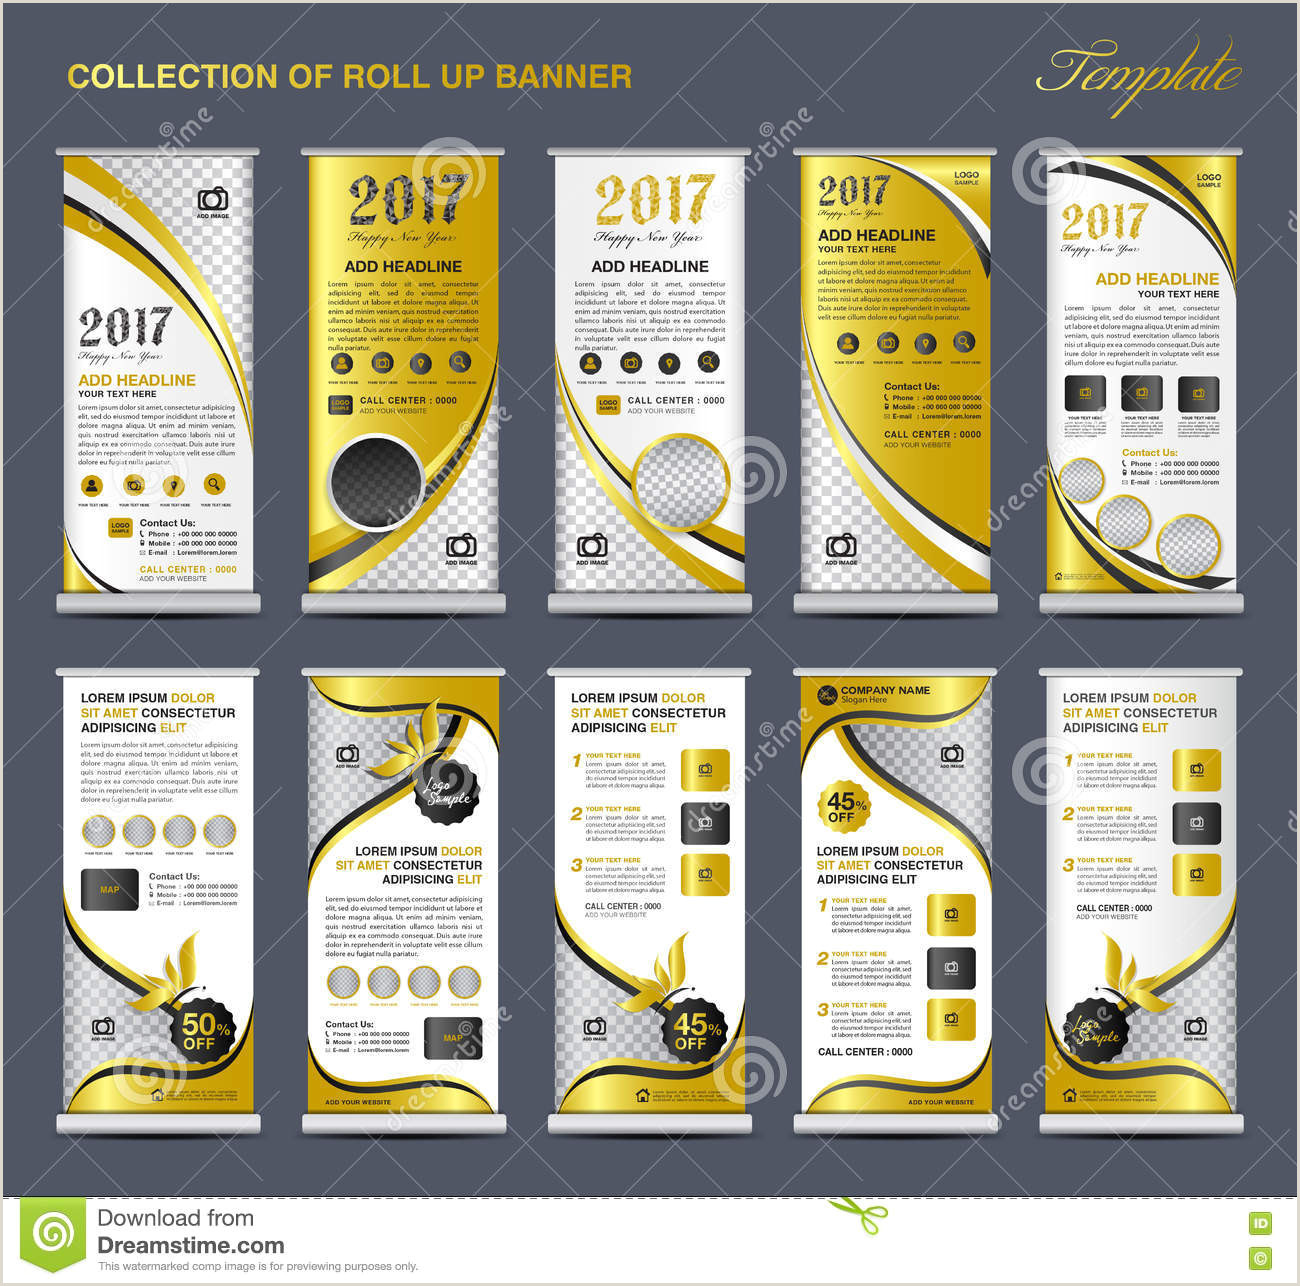 Banner Stand Up Banner Stand Stock Illustrations – 61 038 Banner Stand Stock